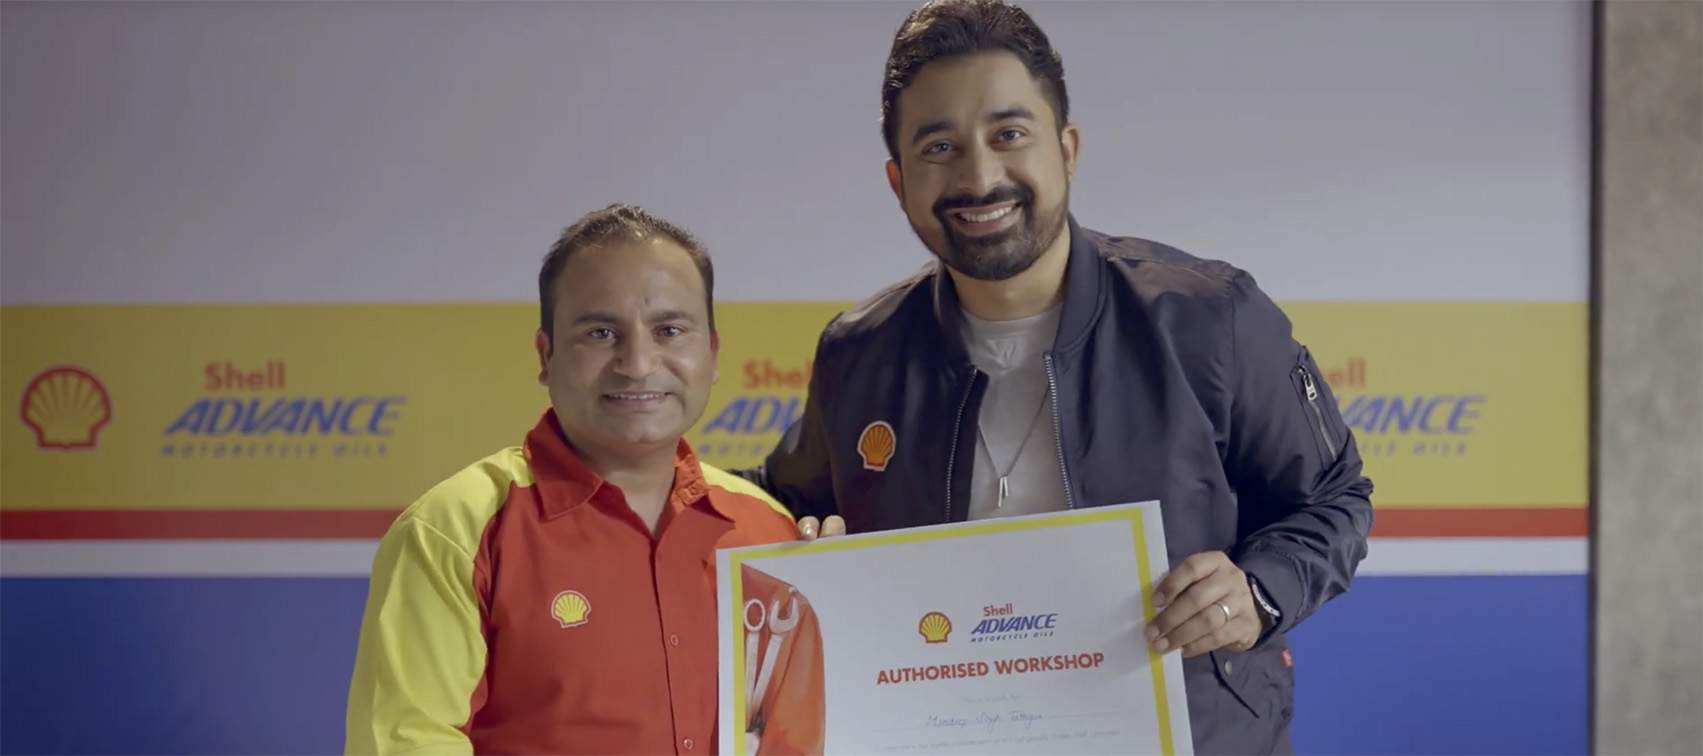 Taproot Dentsu India celebrates the dedication and hard work of mechanics in new Shell work